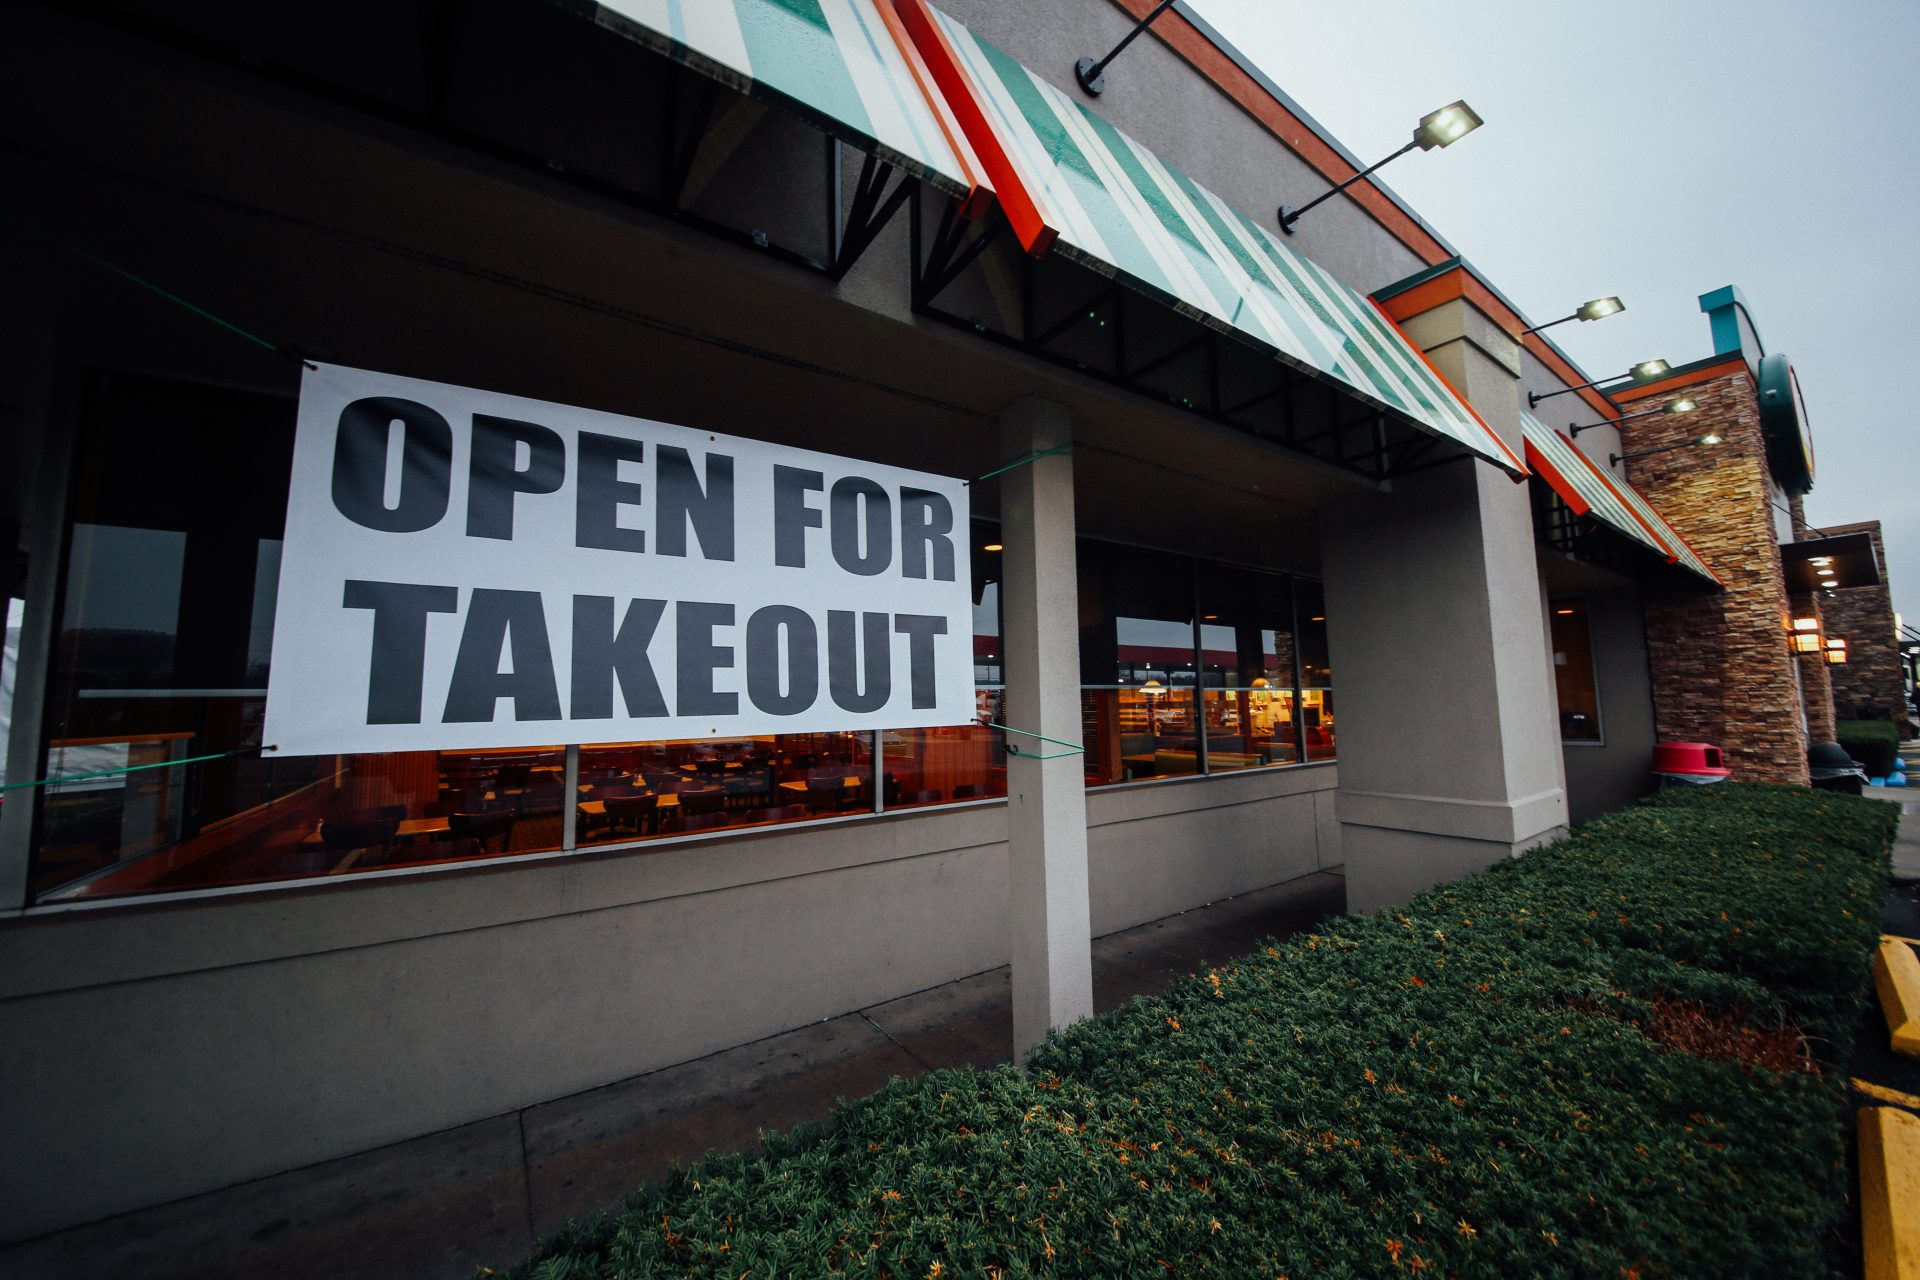 A takeout sign outside of Perkins Restaurant in Manada Hill in the Hershey area.